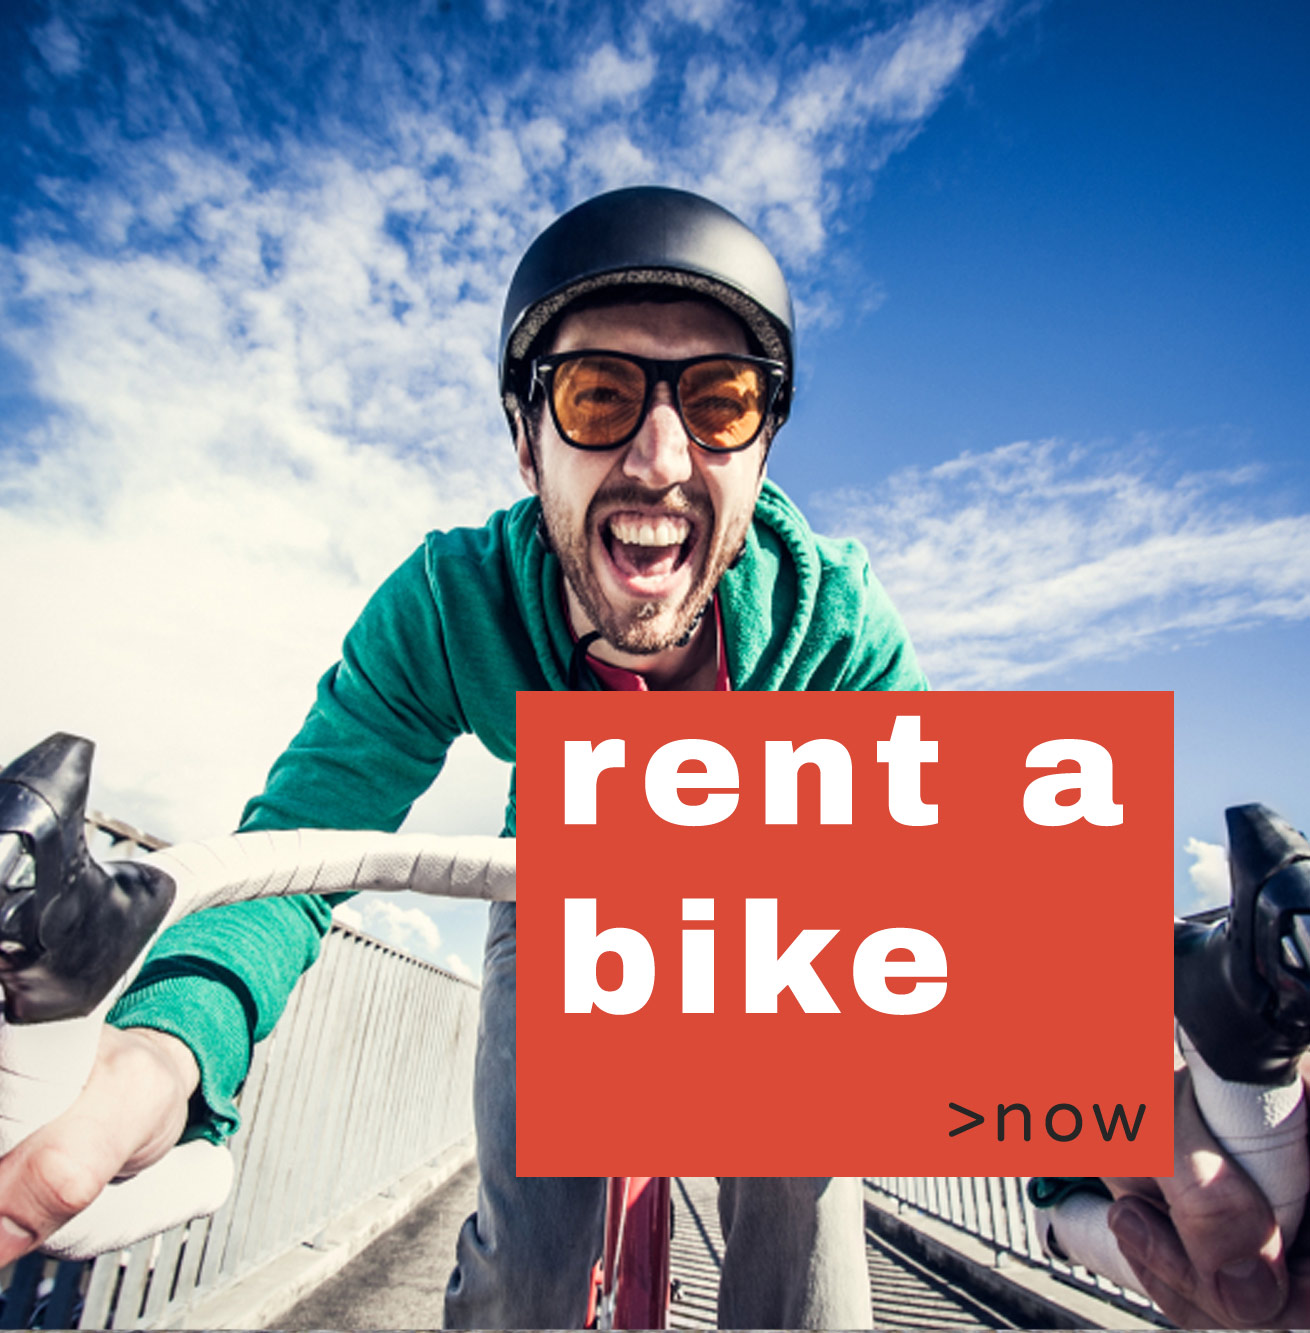 rent a upperbike now